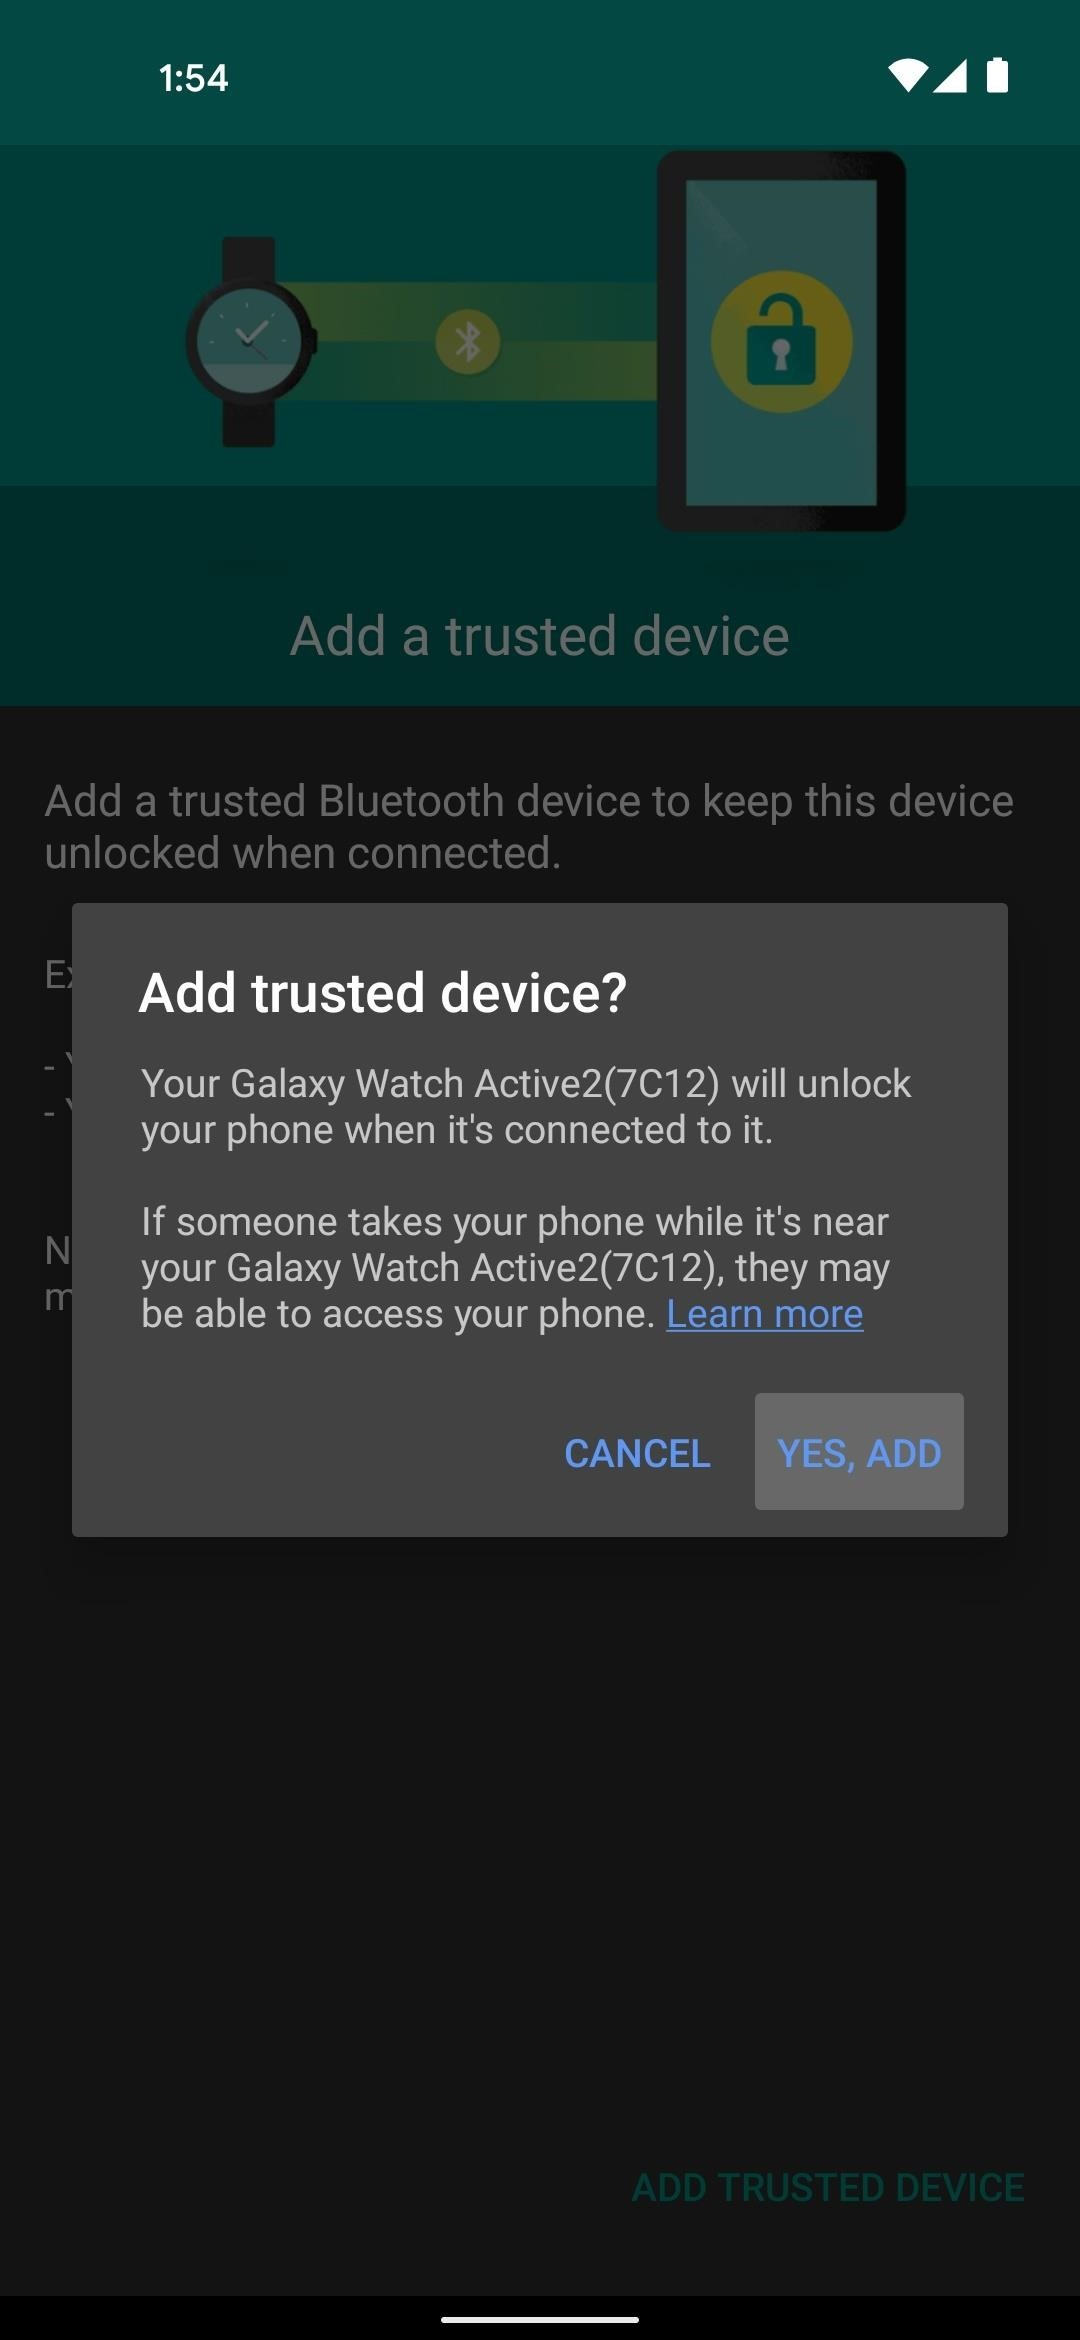 Android already has the iPhone's new Apple Watch Unlock, and it works with any smartwatch